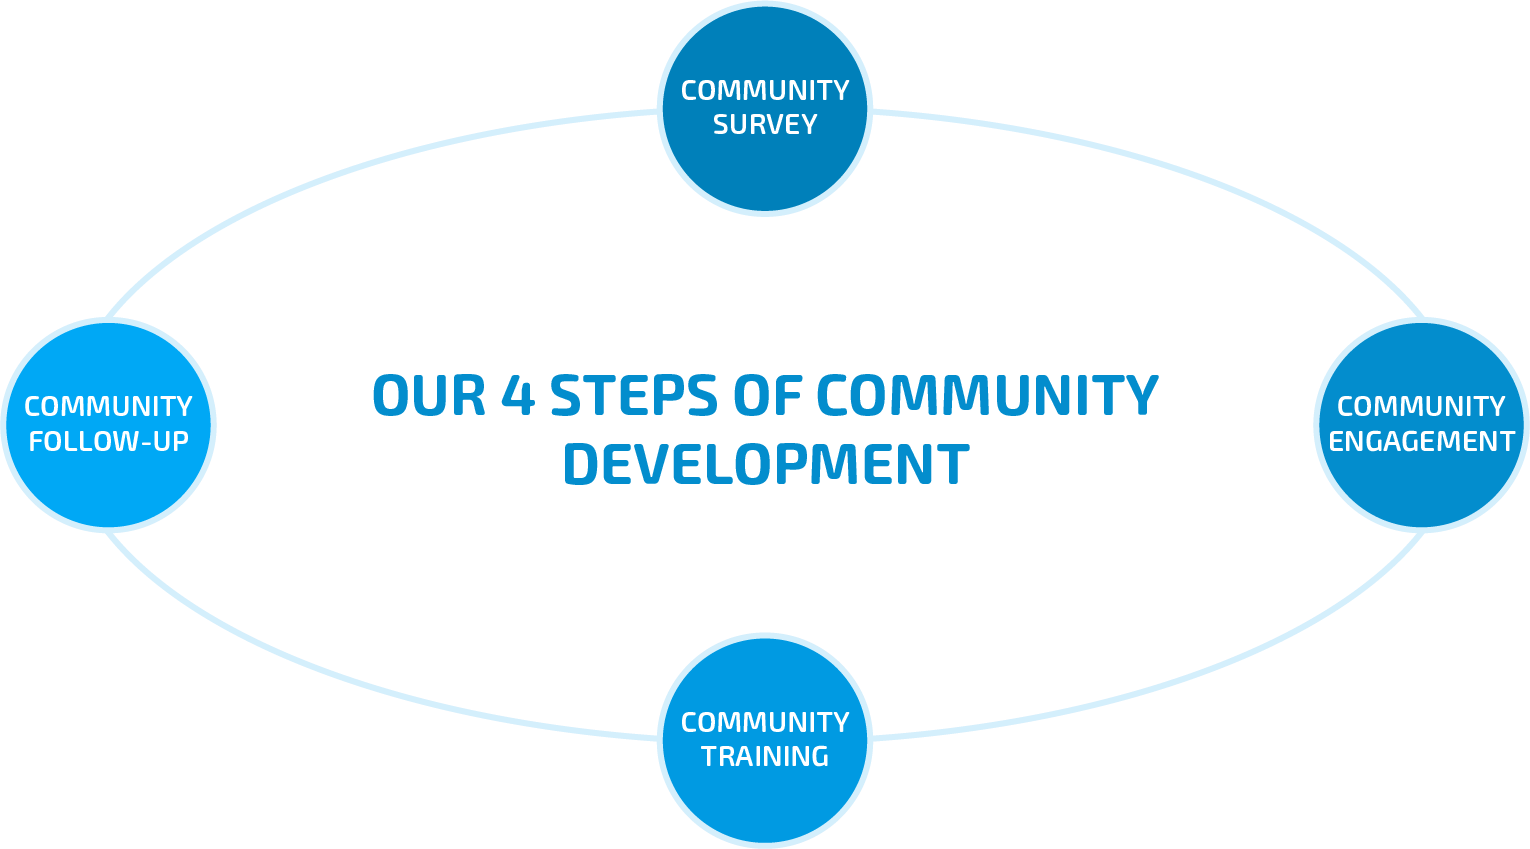 4-steps of community development